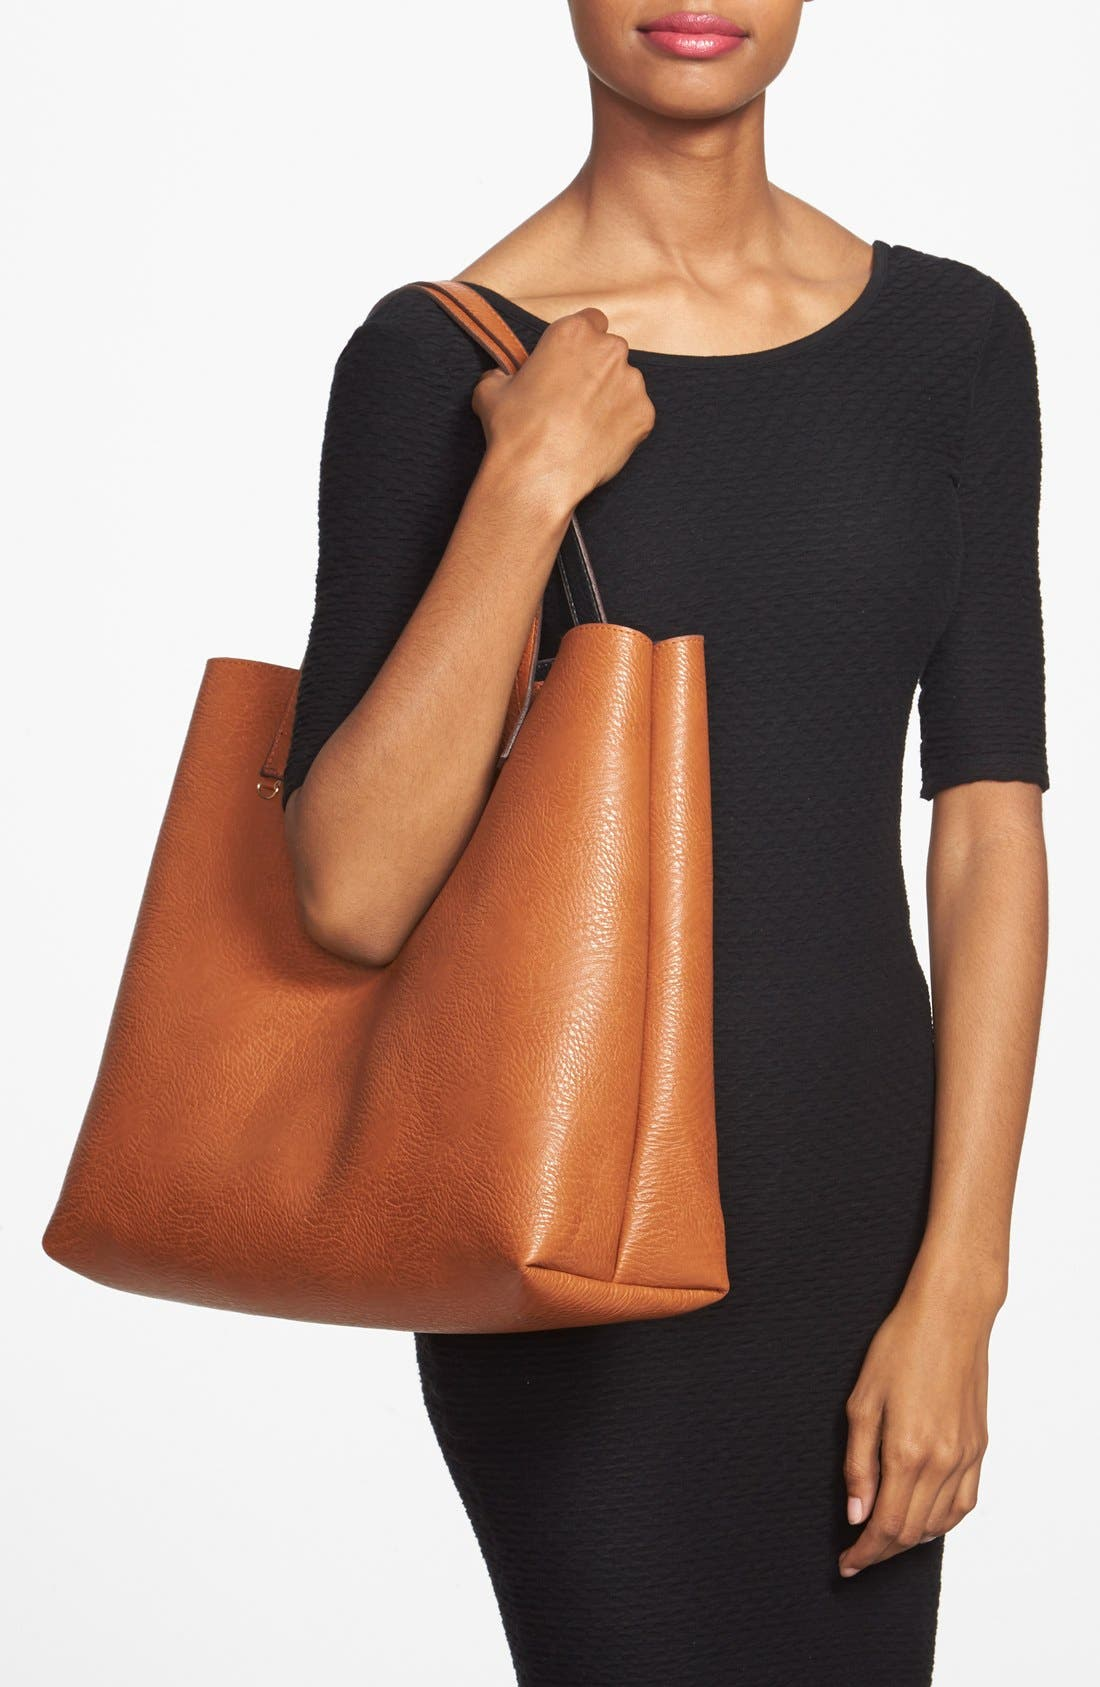 STREET LEVEL,                             Reversible Faux Leather Tote & Wristlet,                             Alternate thumbnail 9, color,                             BLACK/ COGNAC